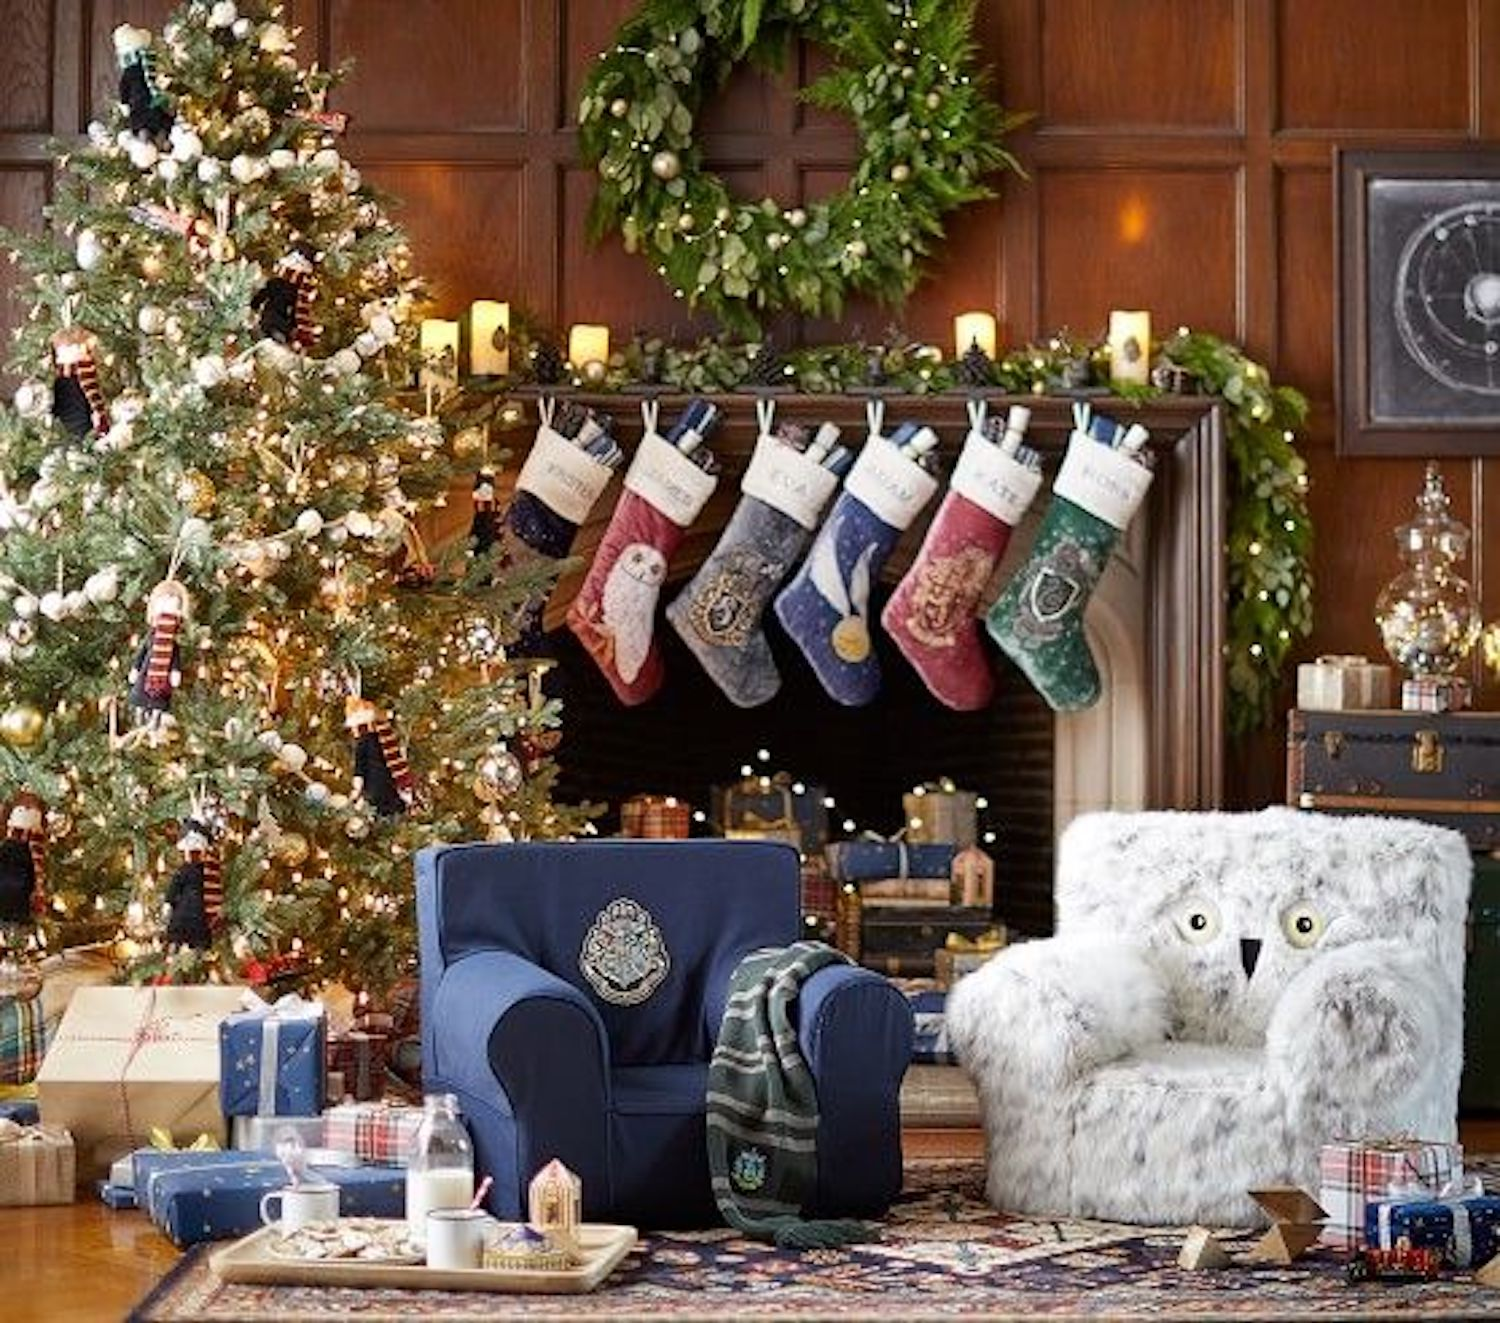 Harry Potter Christmas Ideas How To Create A Magical Theme This Xmas